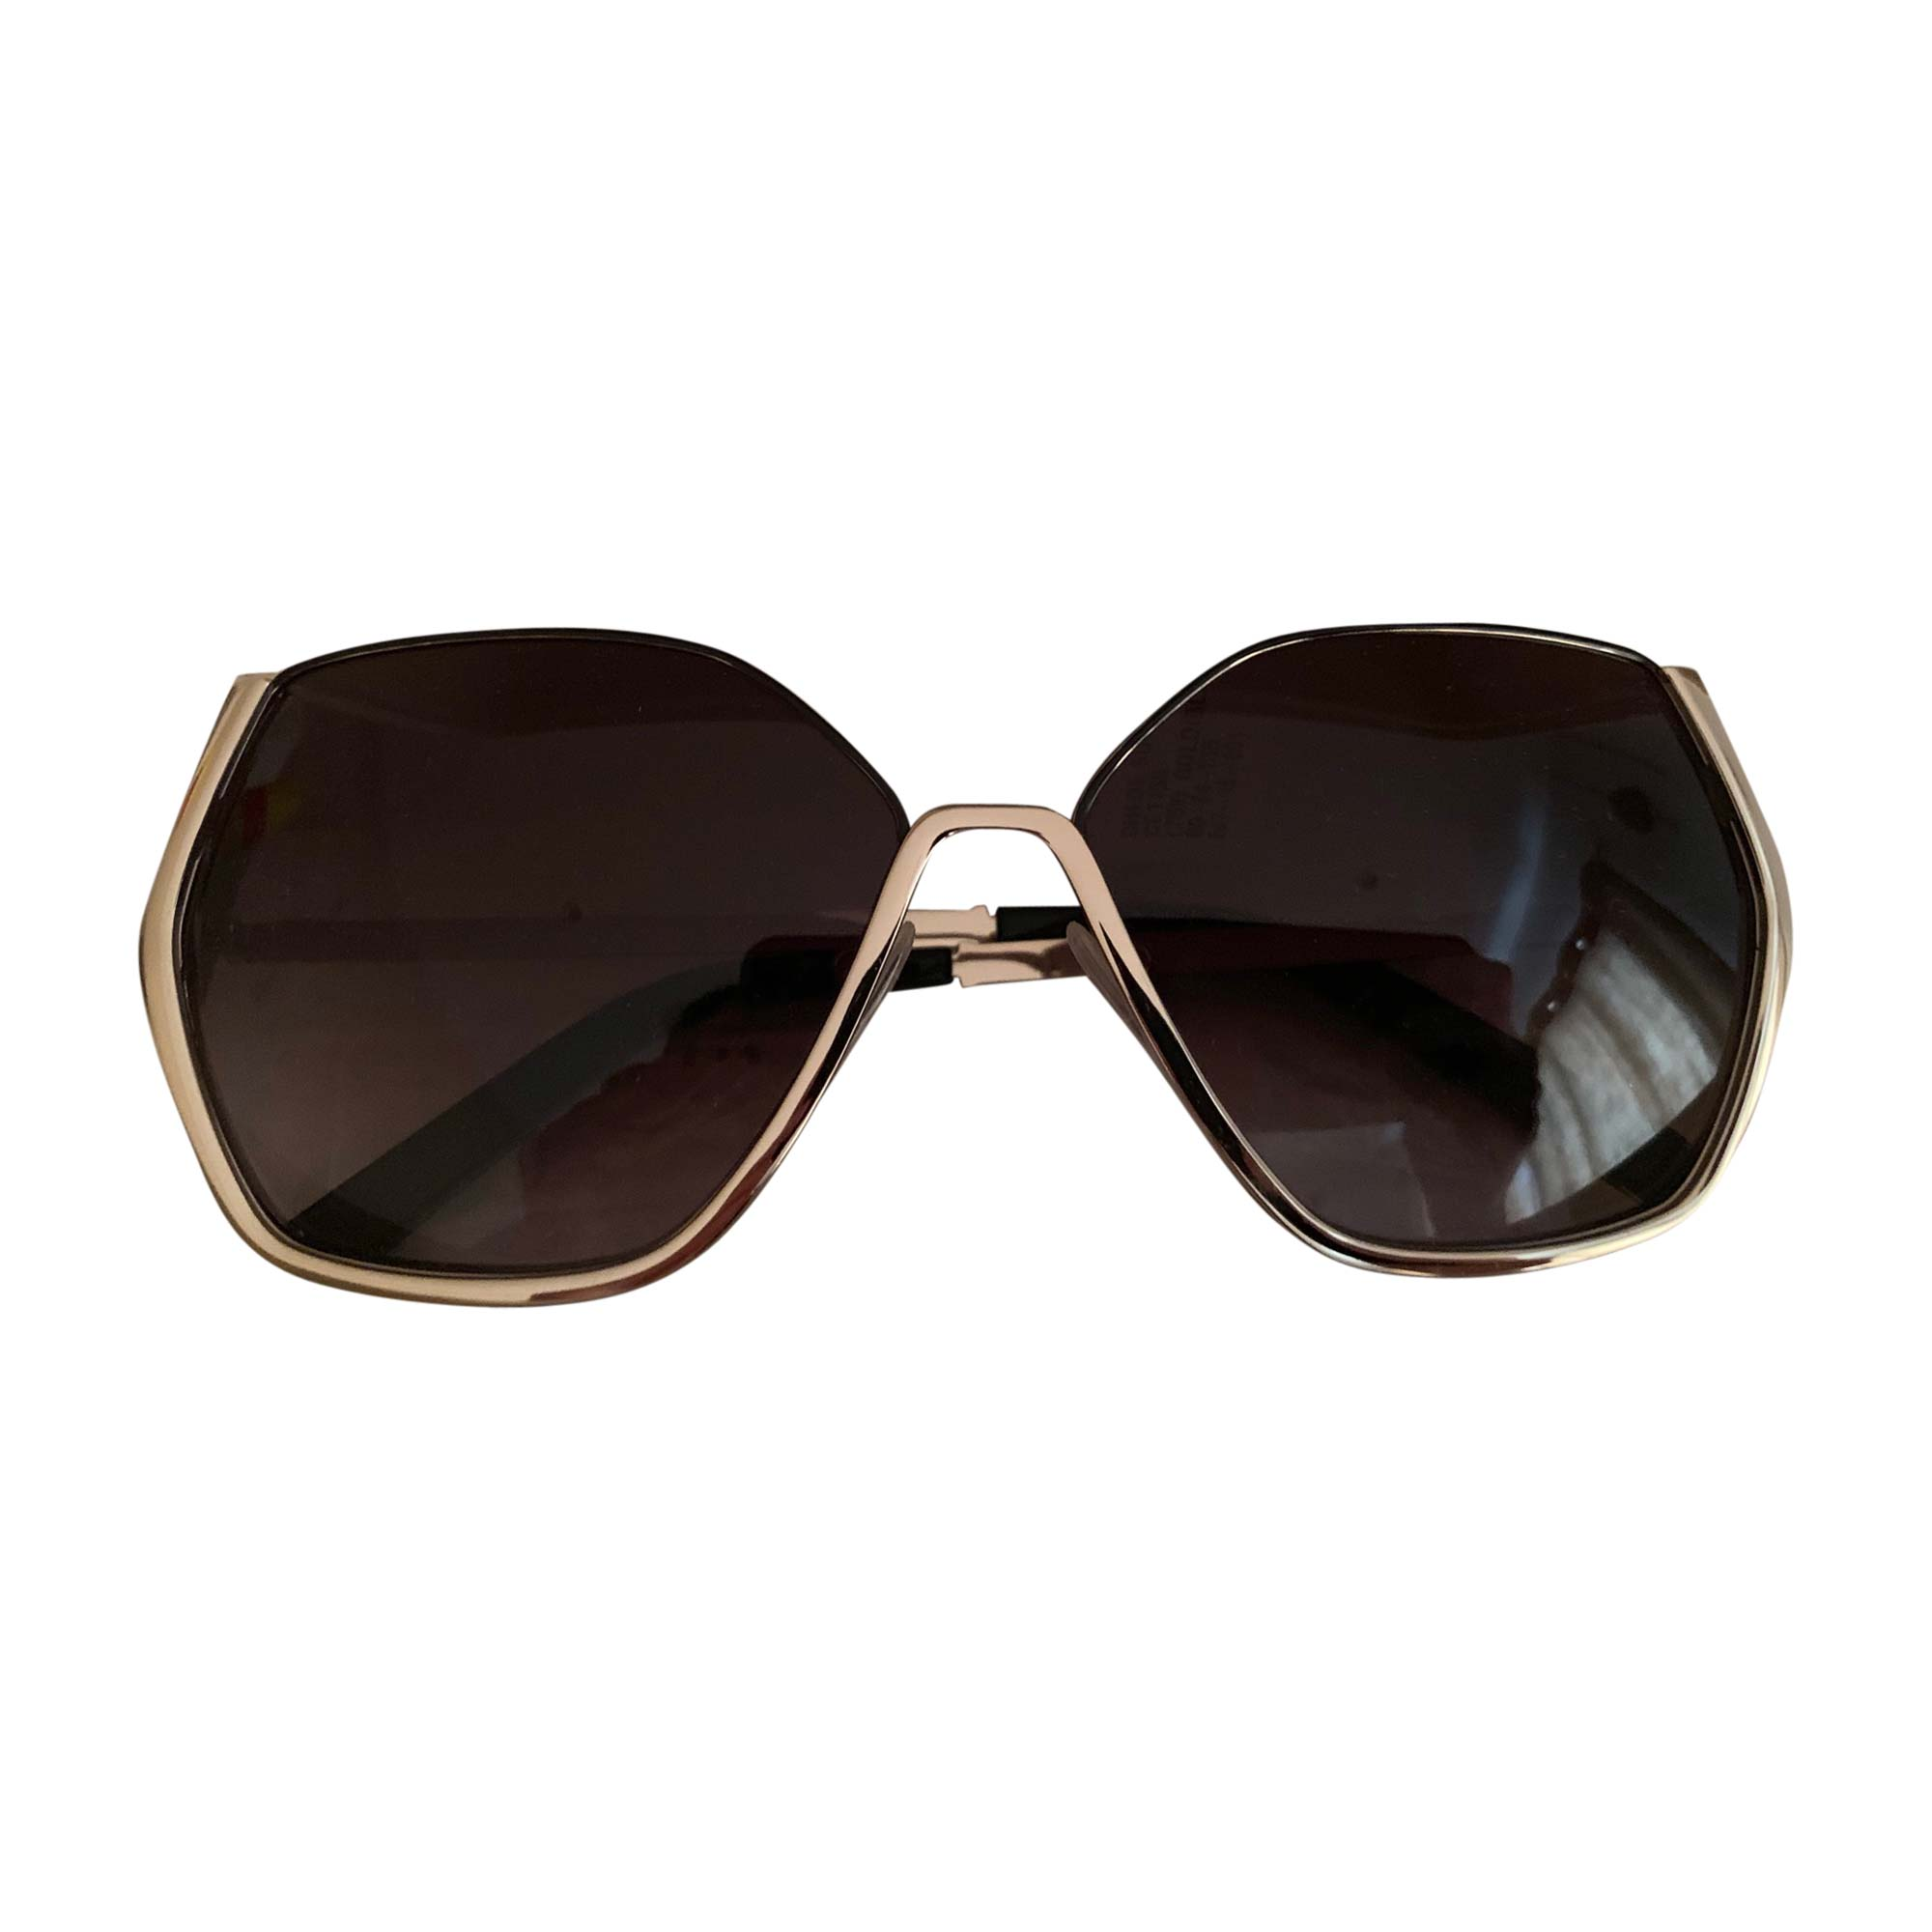 Sunglasses CHLOÉ Golden, bronze, copper